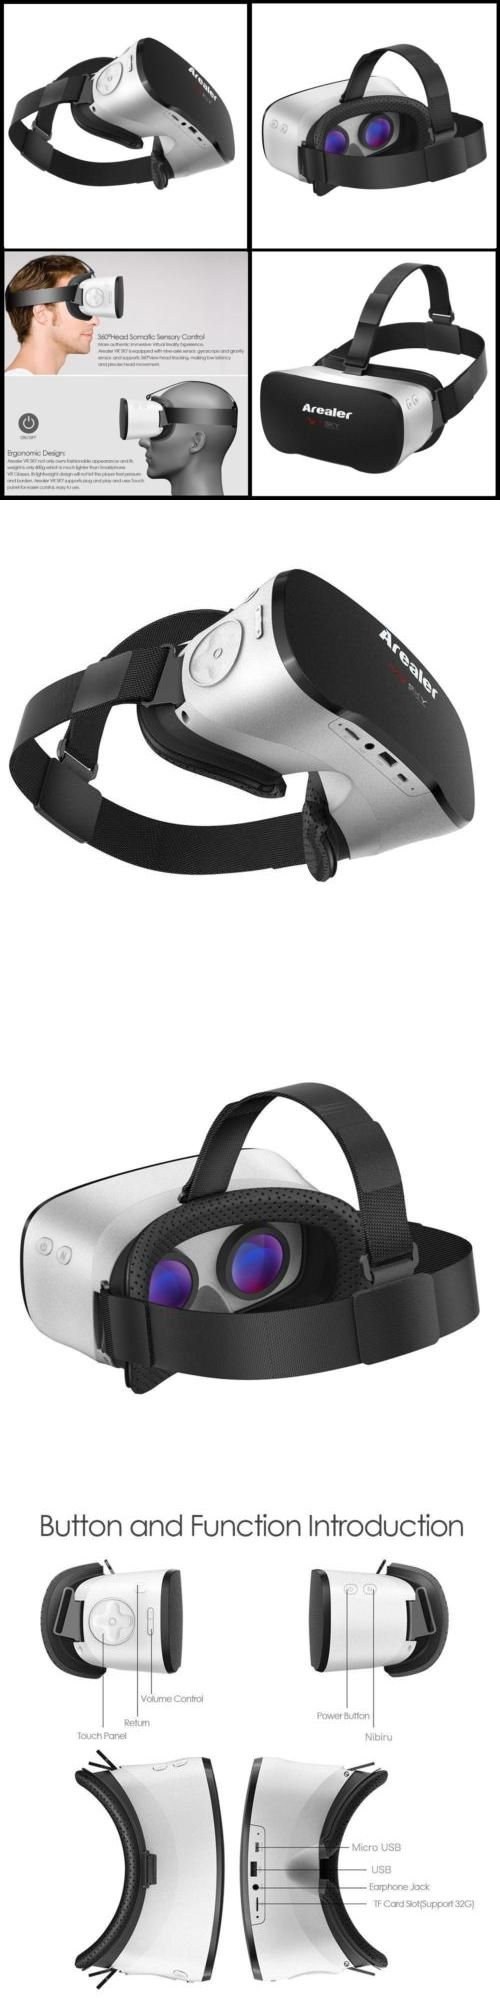 PC and Console VR Headsets: All-In-One High Definition Virtual Reality Vr Helmet Machine Headset 3D Glasses -> BUY IT NOW ONLY: $160 on eBay!